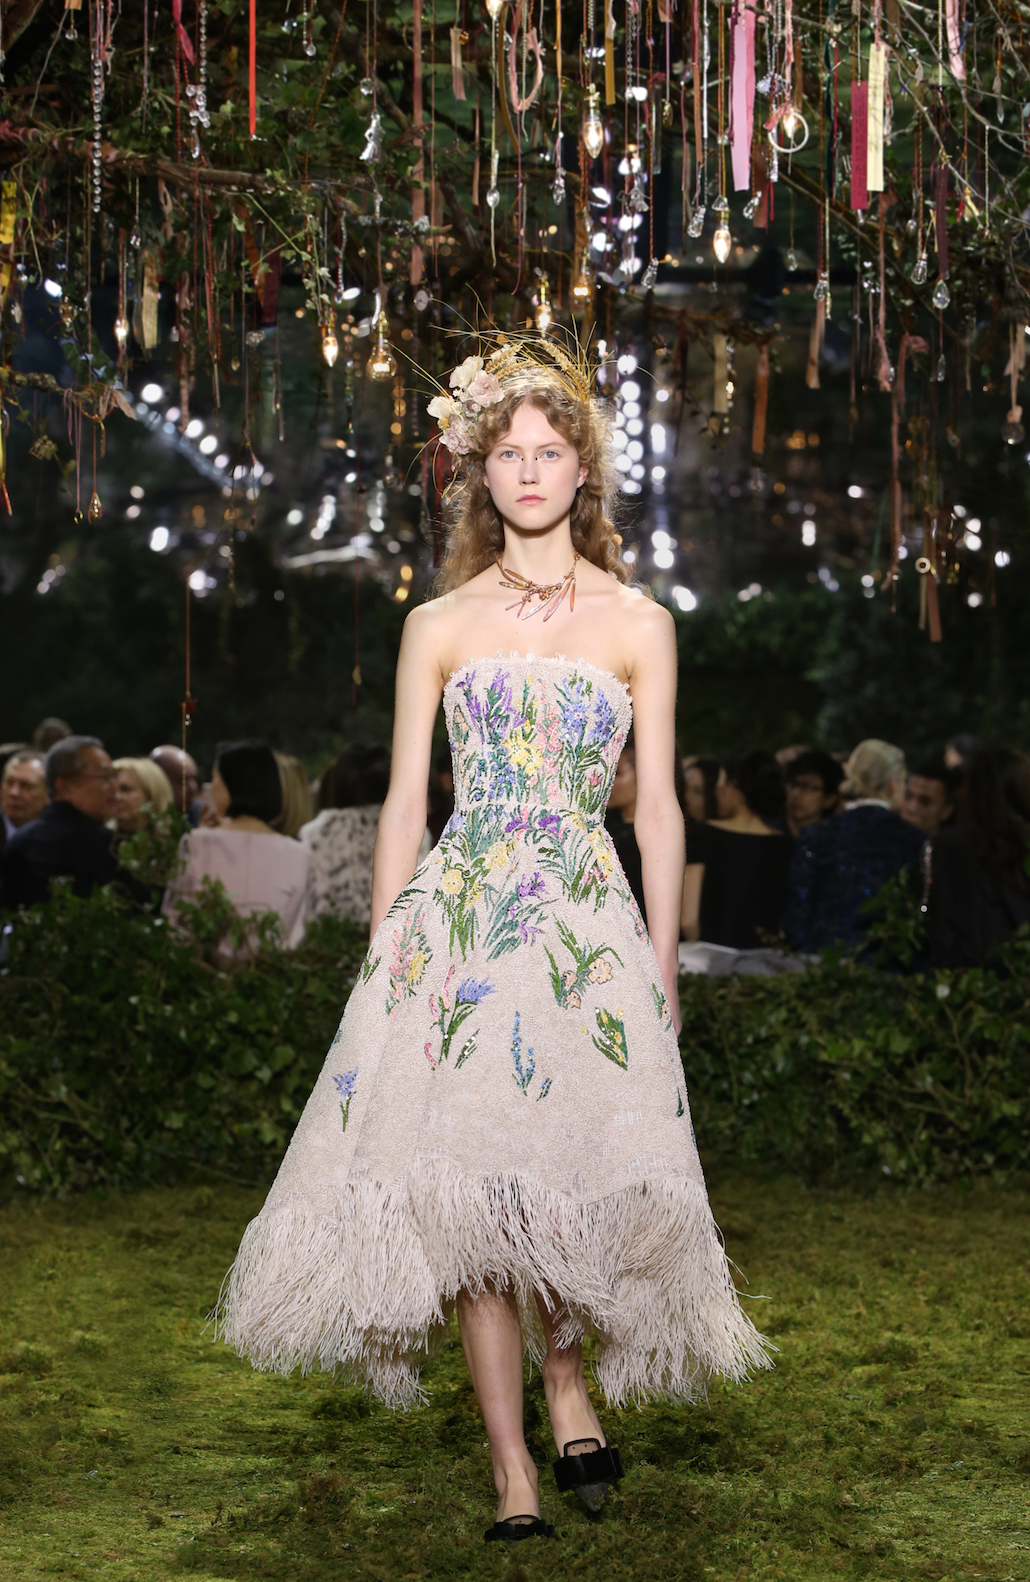 Christian Dior, Paris (fashion house) Maria Grazia Chiuri (designer) Essence d'Herbier Ecru fringe cocktail dress, floral raffia and thread embroidery derived from a Monsieur Dior original (1900 hours of work) Hedgerow headdress in silk flowers and corn Haute Couture spring–summer 2017 Collection © Dior